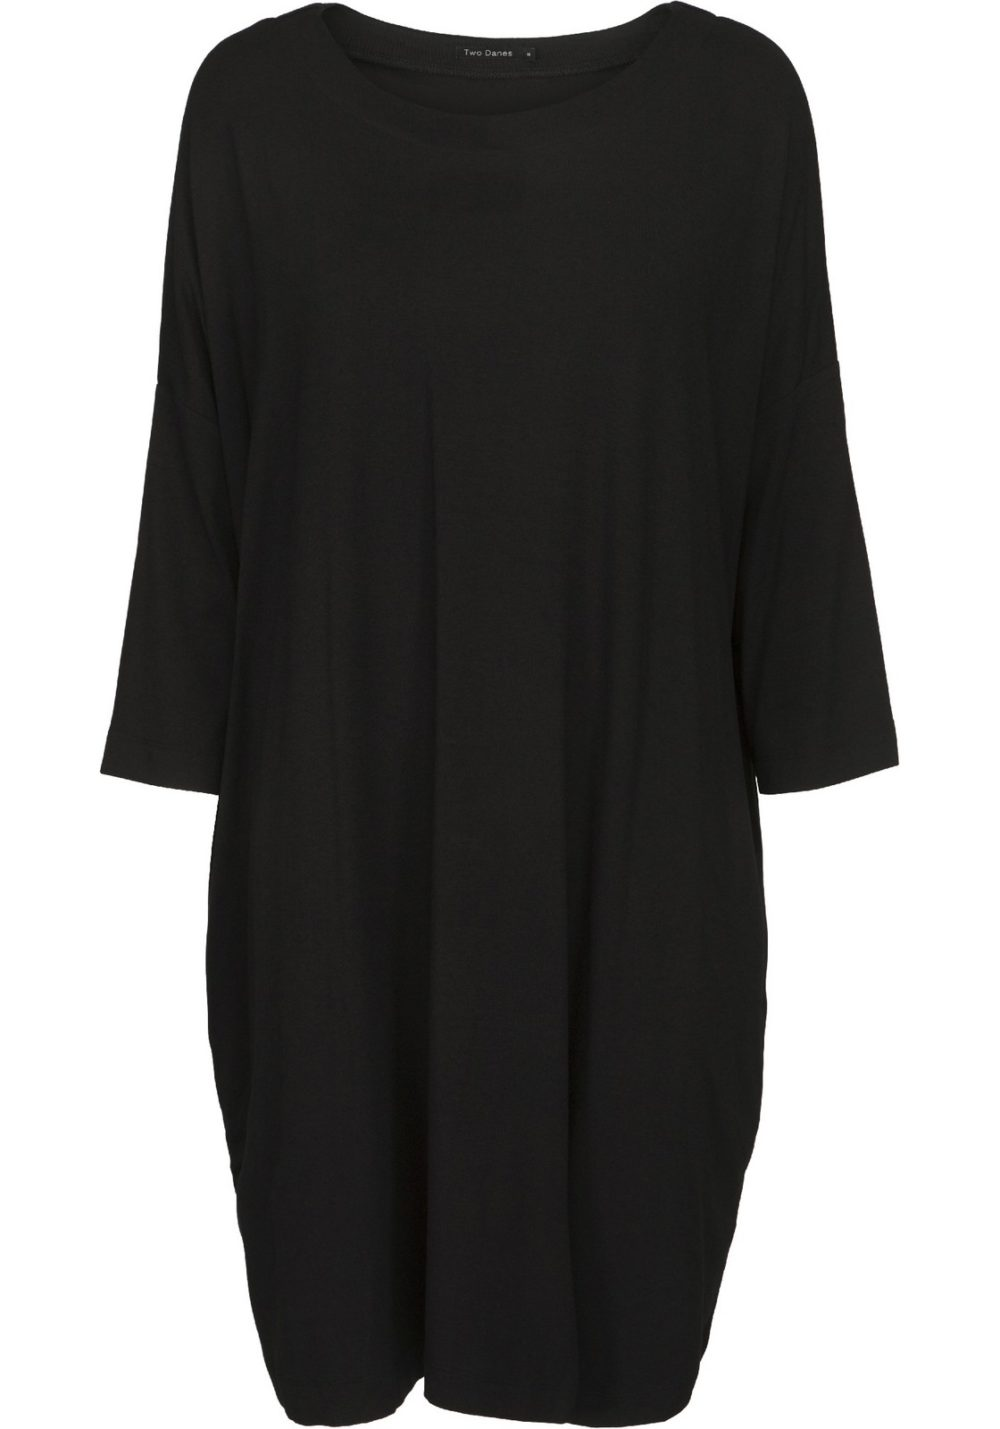 Botelle Tunic Black